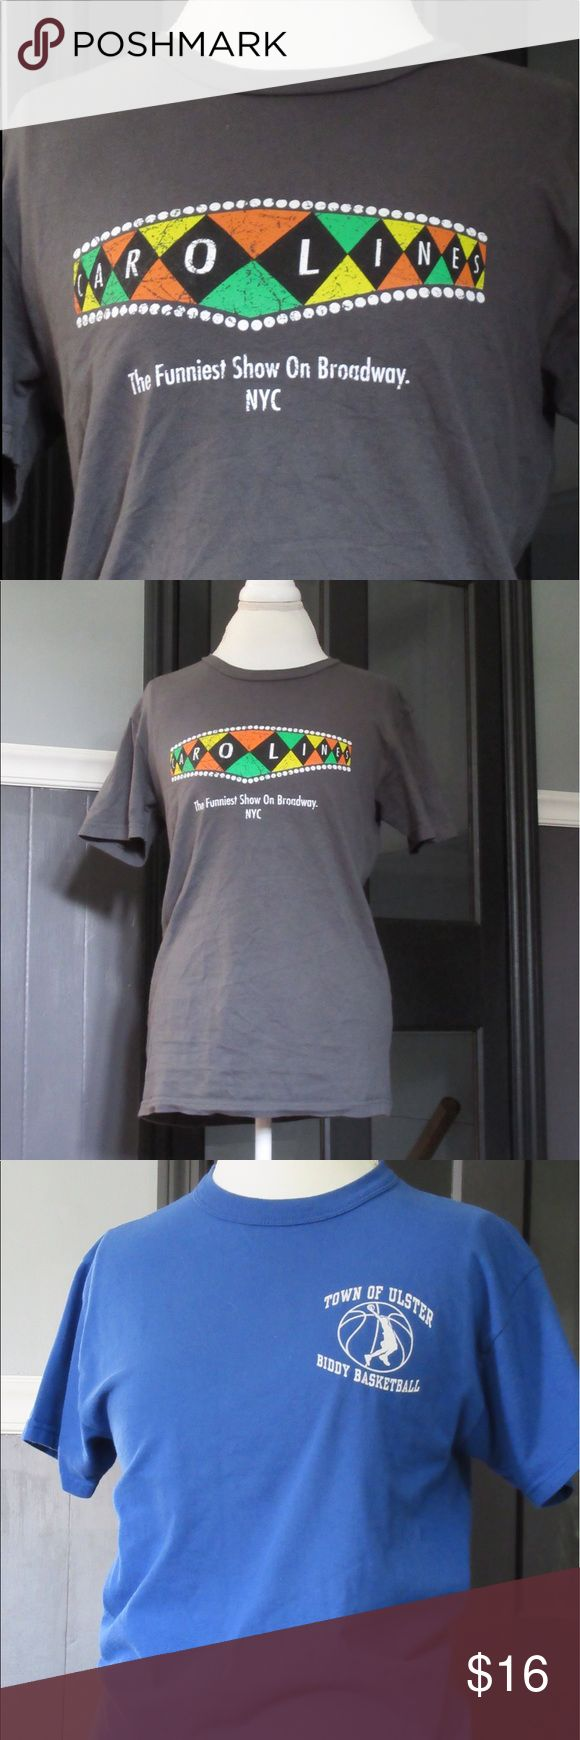 """Lot of casual tees A lot of casual tees in a a variety of styles. There is a graphic tee from Caroline's comedy club in NYC, a fun """"softball jersey"""" from a NY state town, and a classic solid faded orange tee for layering. Tops Tees - Short Sleeve"""